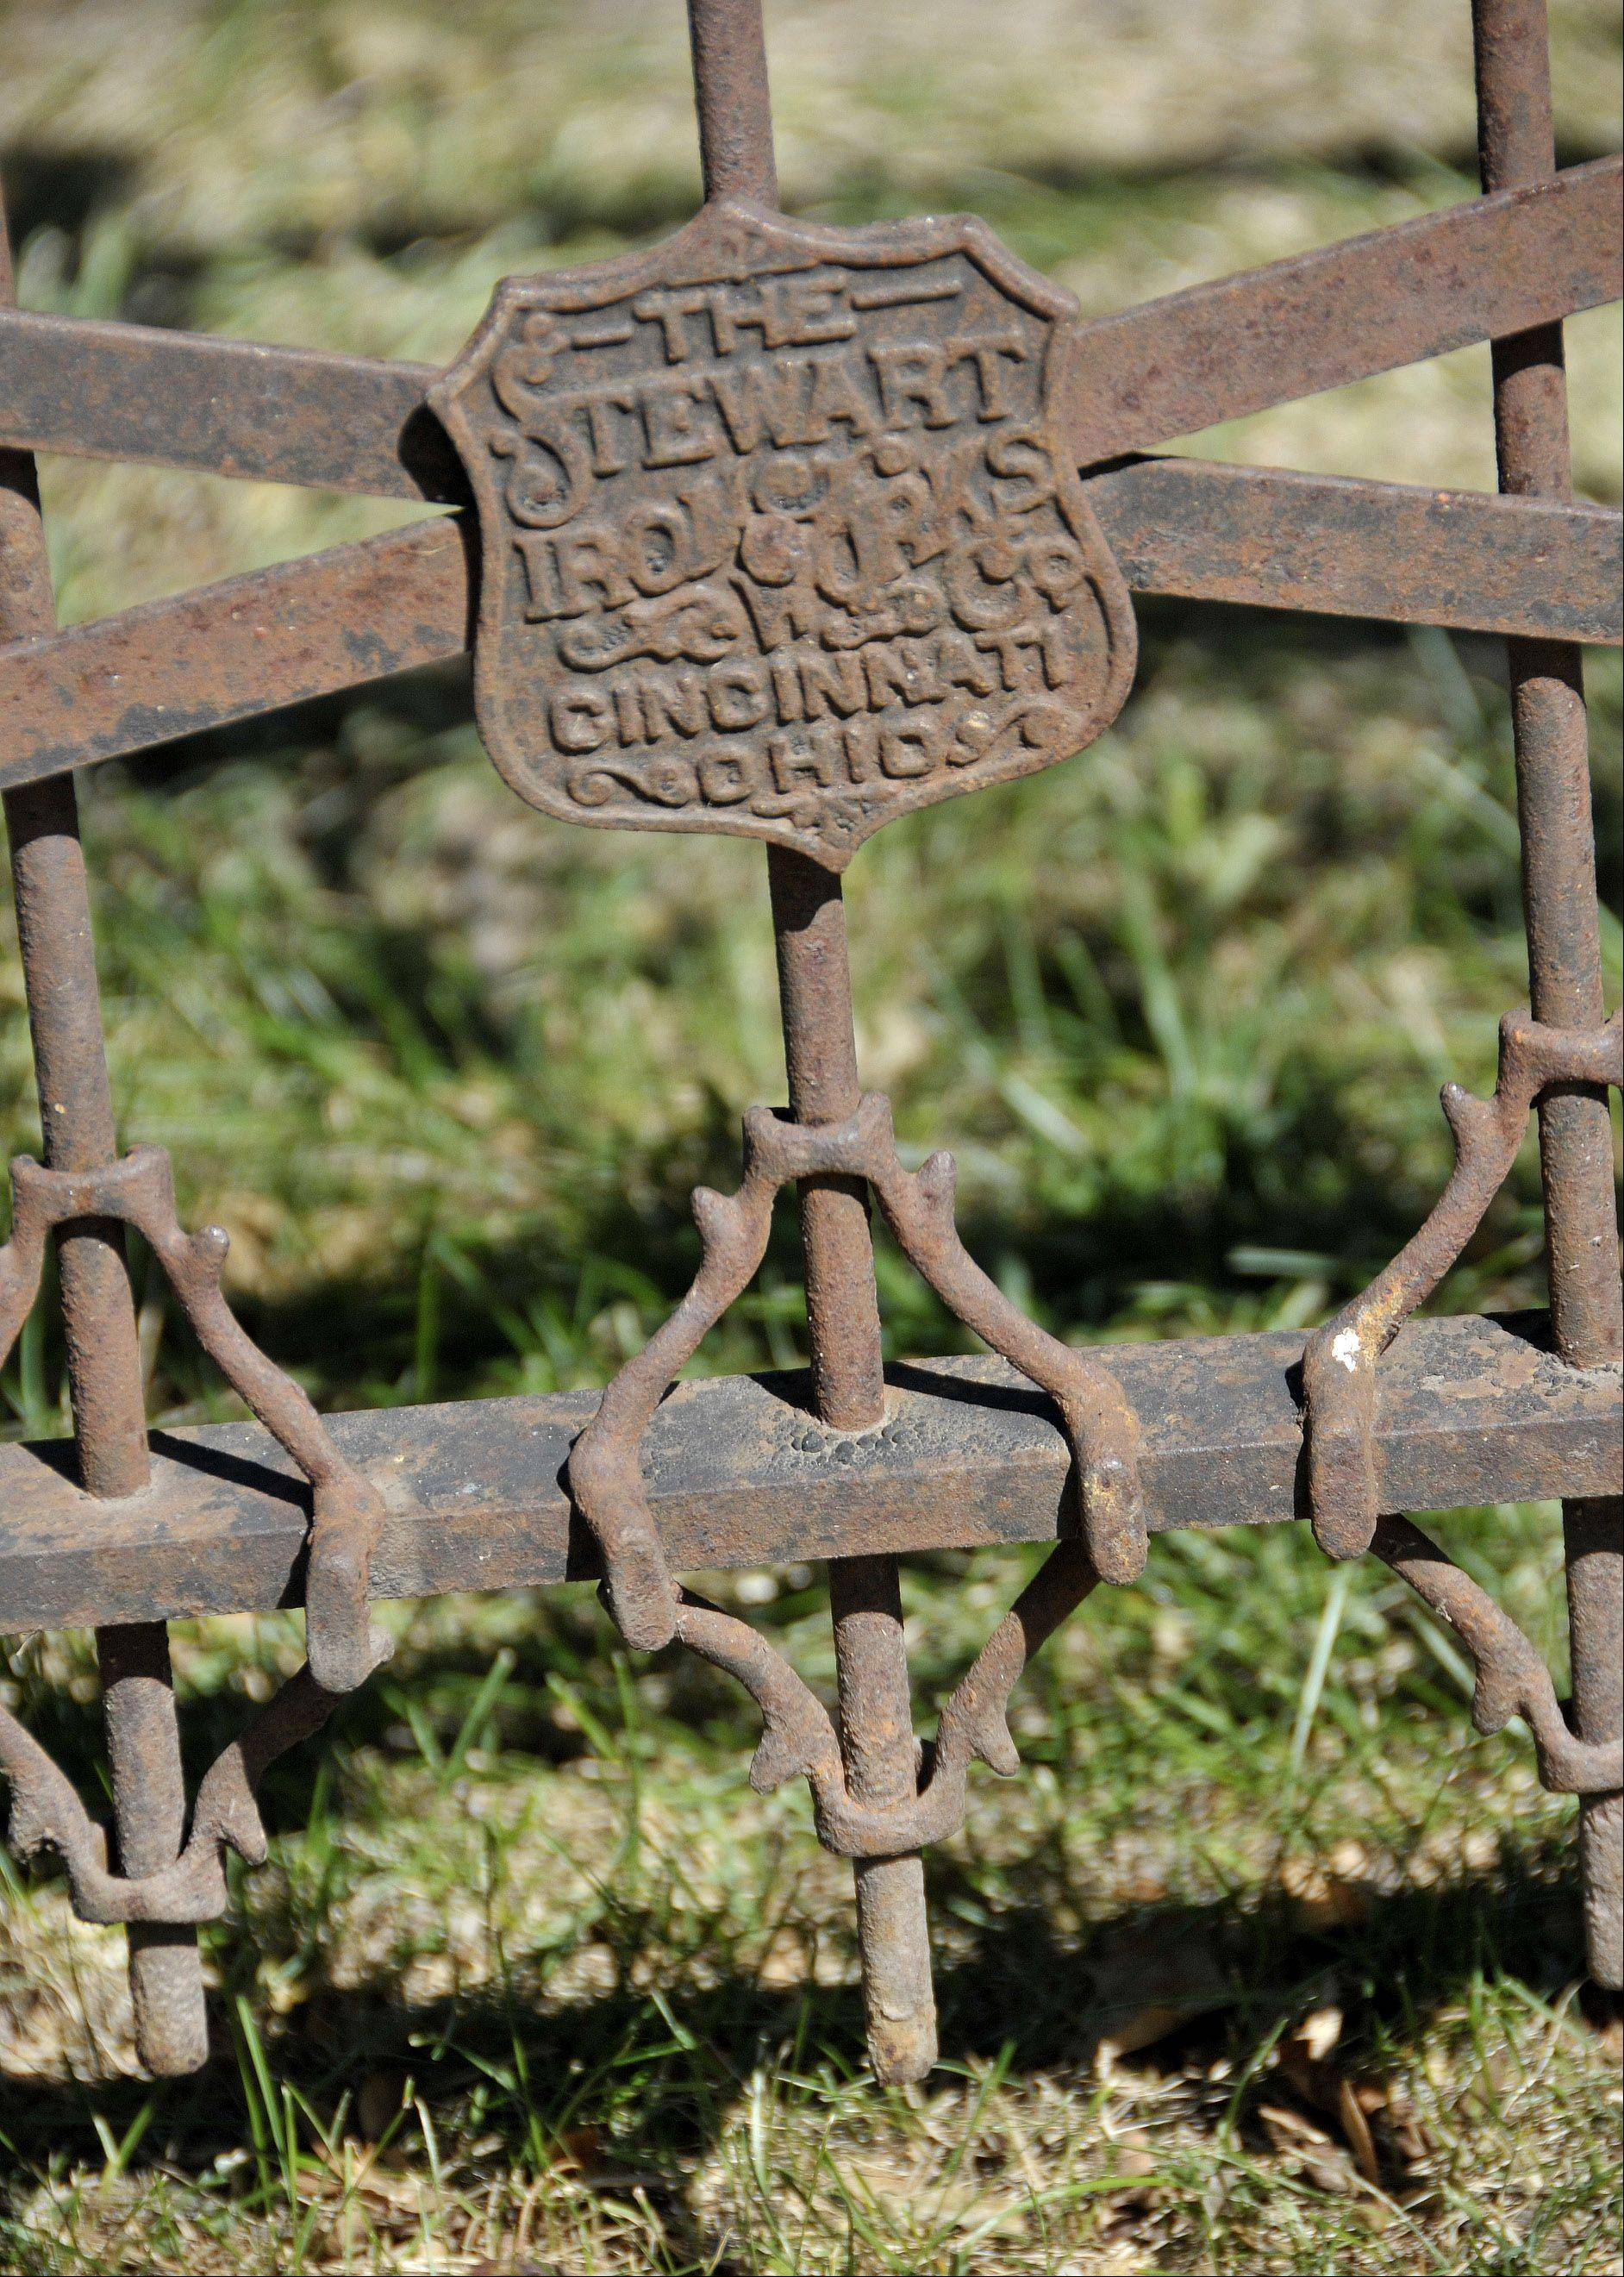 The 1800s fence was originally manufactured by Stewart Iron Works, a company that is still in business